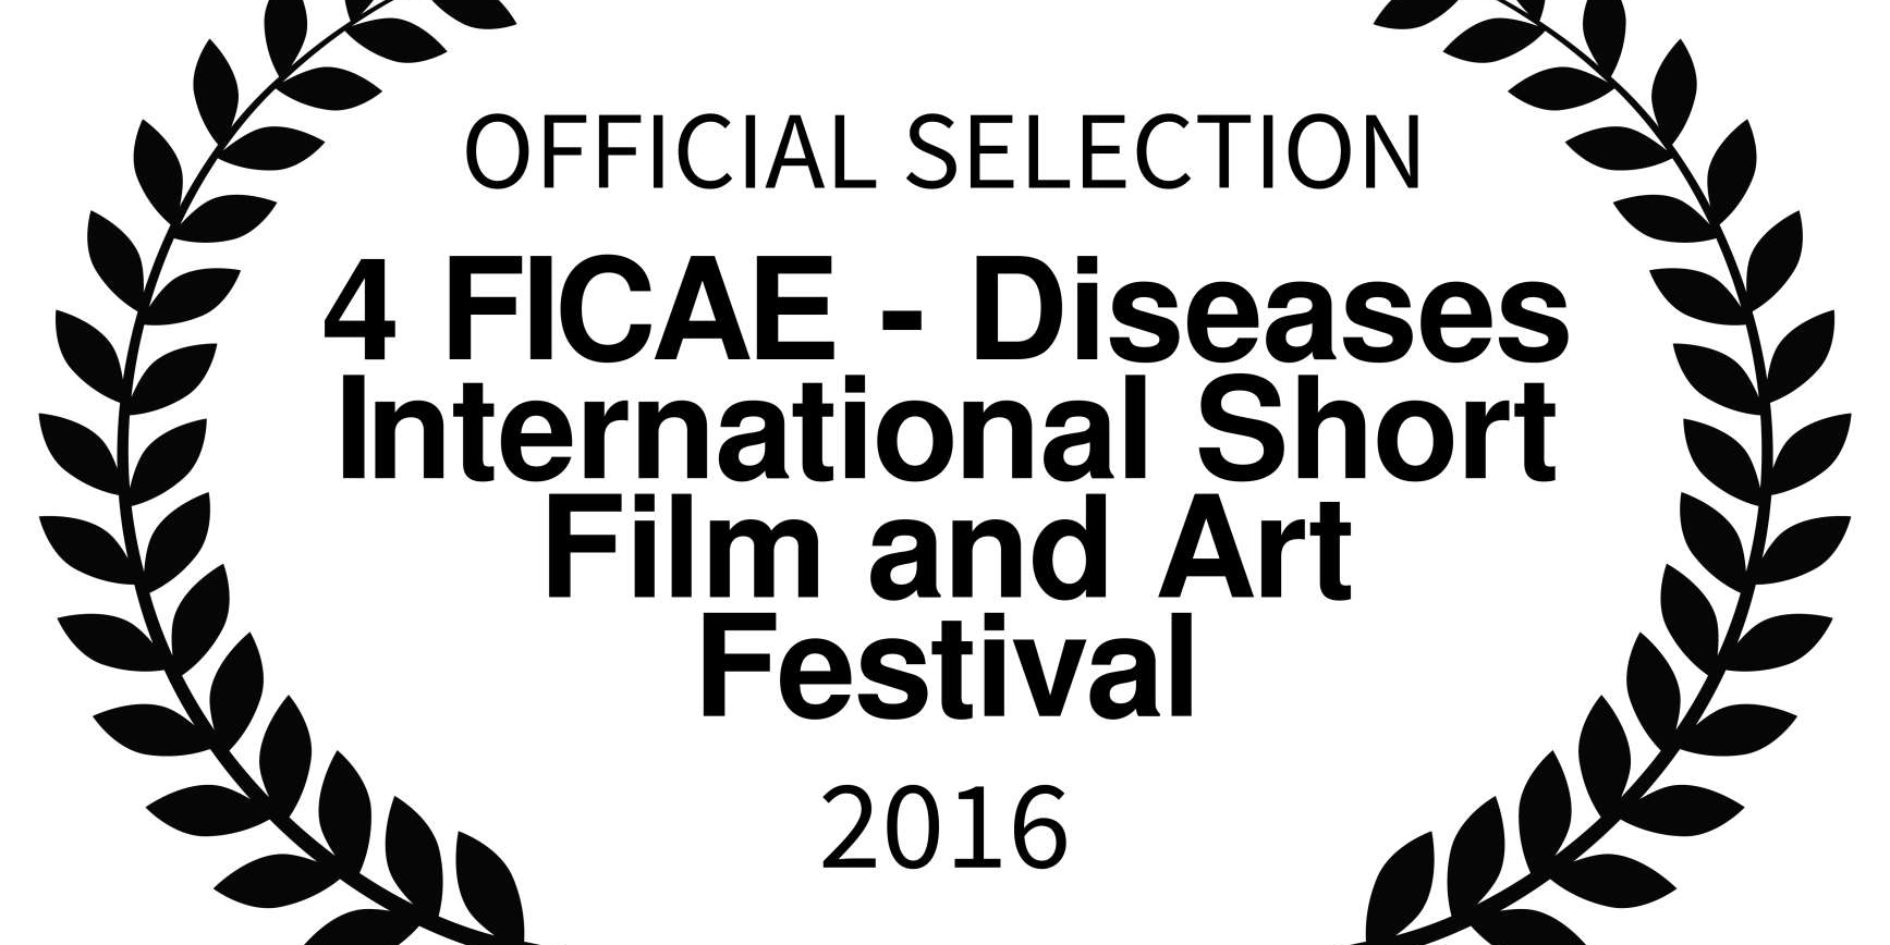 FICAE- Diseases International Short Film and Art Festival